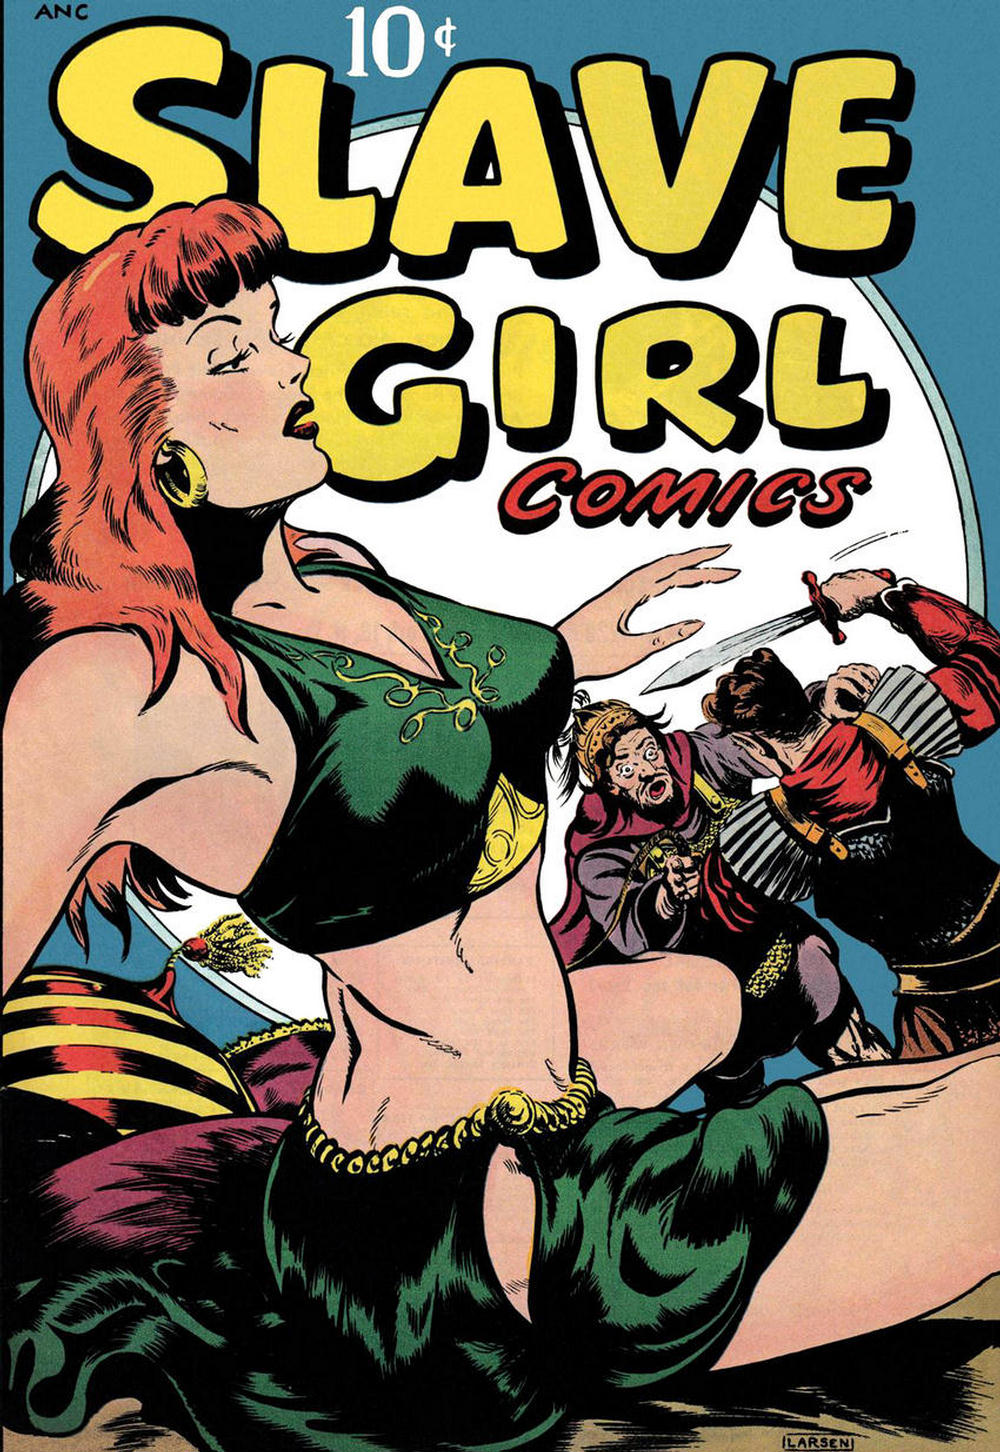 SLAVE GIRL COMICS #1, cover-dated Feb. 1949, published by Avon Periodicals.jpg